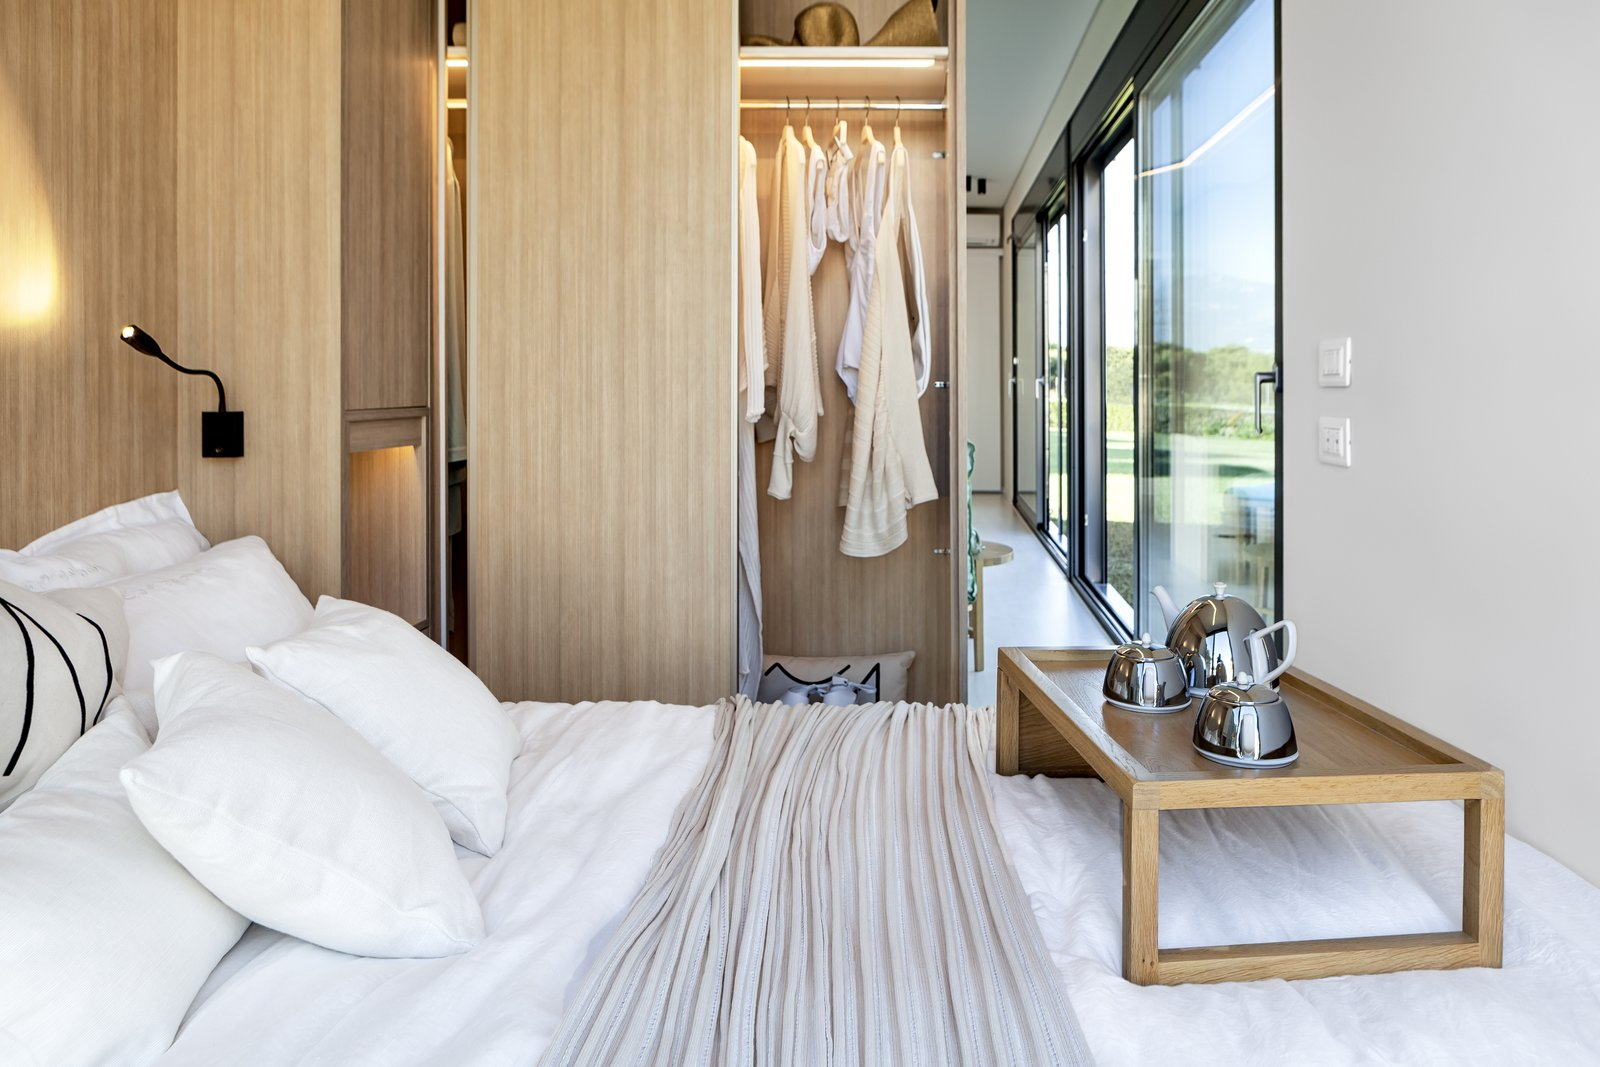 Bedroom, Storage, Wardrobe, Light Hardwood Floor, Wall Lighting, and Bed Built-in closets create a wall between the sleeping quarters and living spaces, allowing for more storage space.    Photo 7 of 10 in This Eco-Friendly Shipping Container Is the Ultimate Nomadic Dwelling